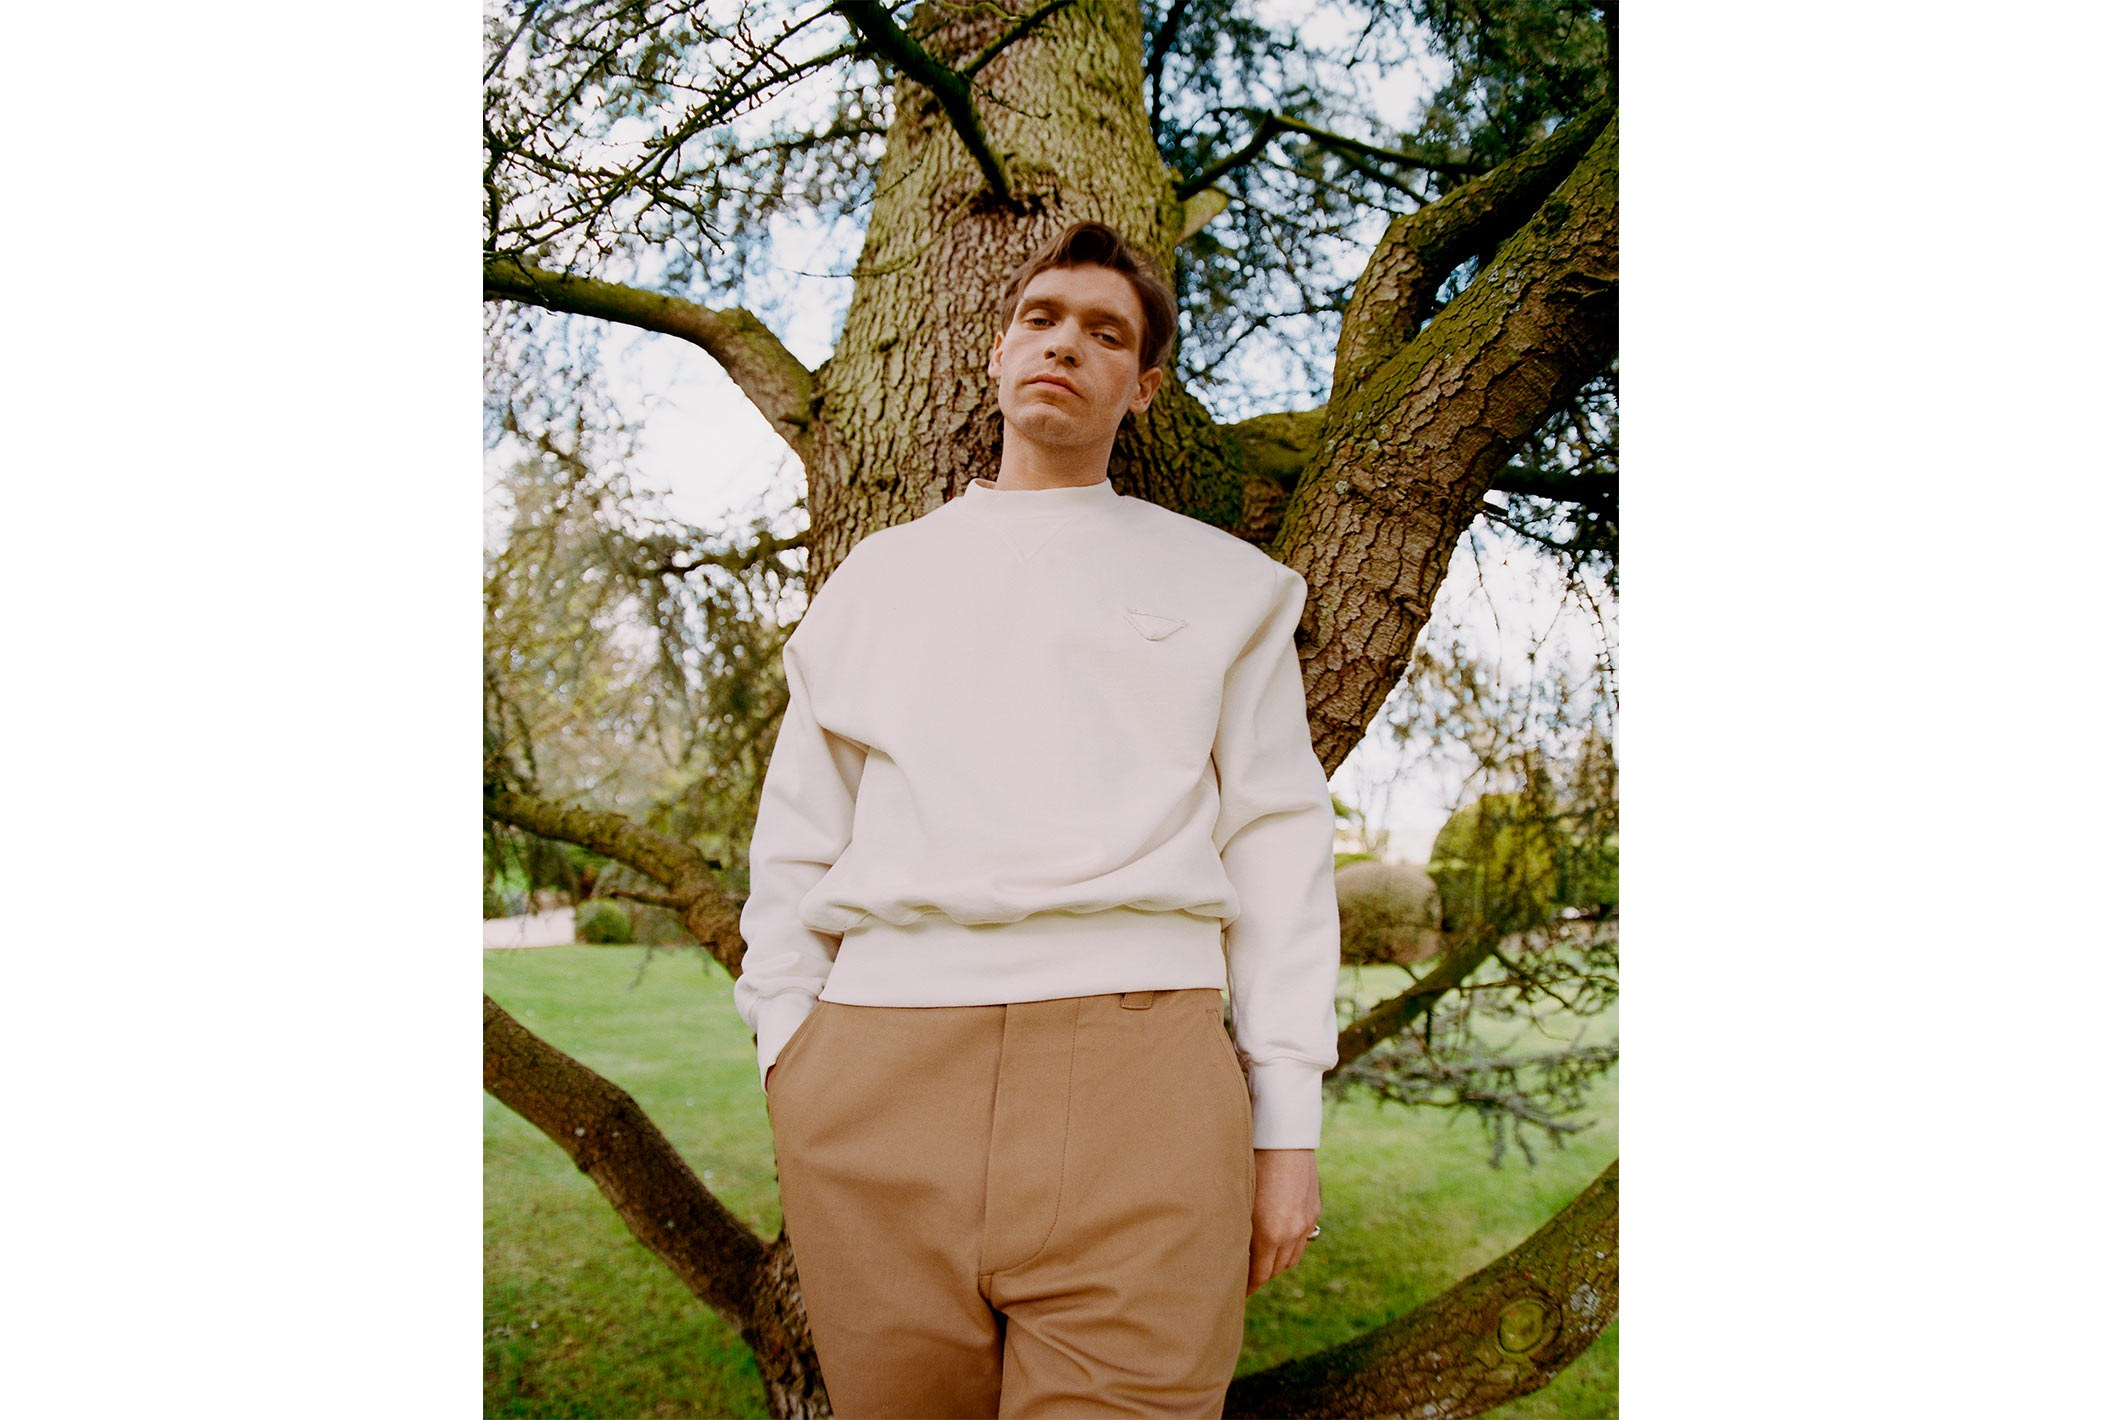 Nick Thompson Billy Howle4